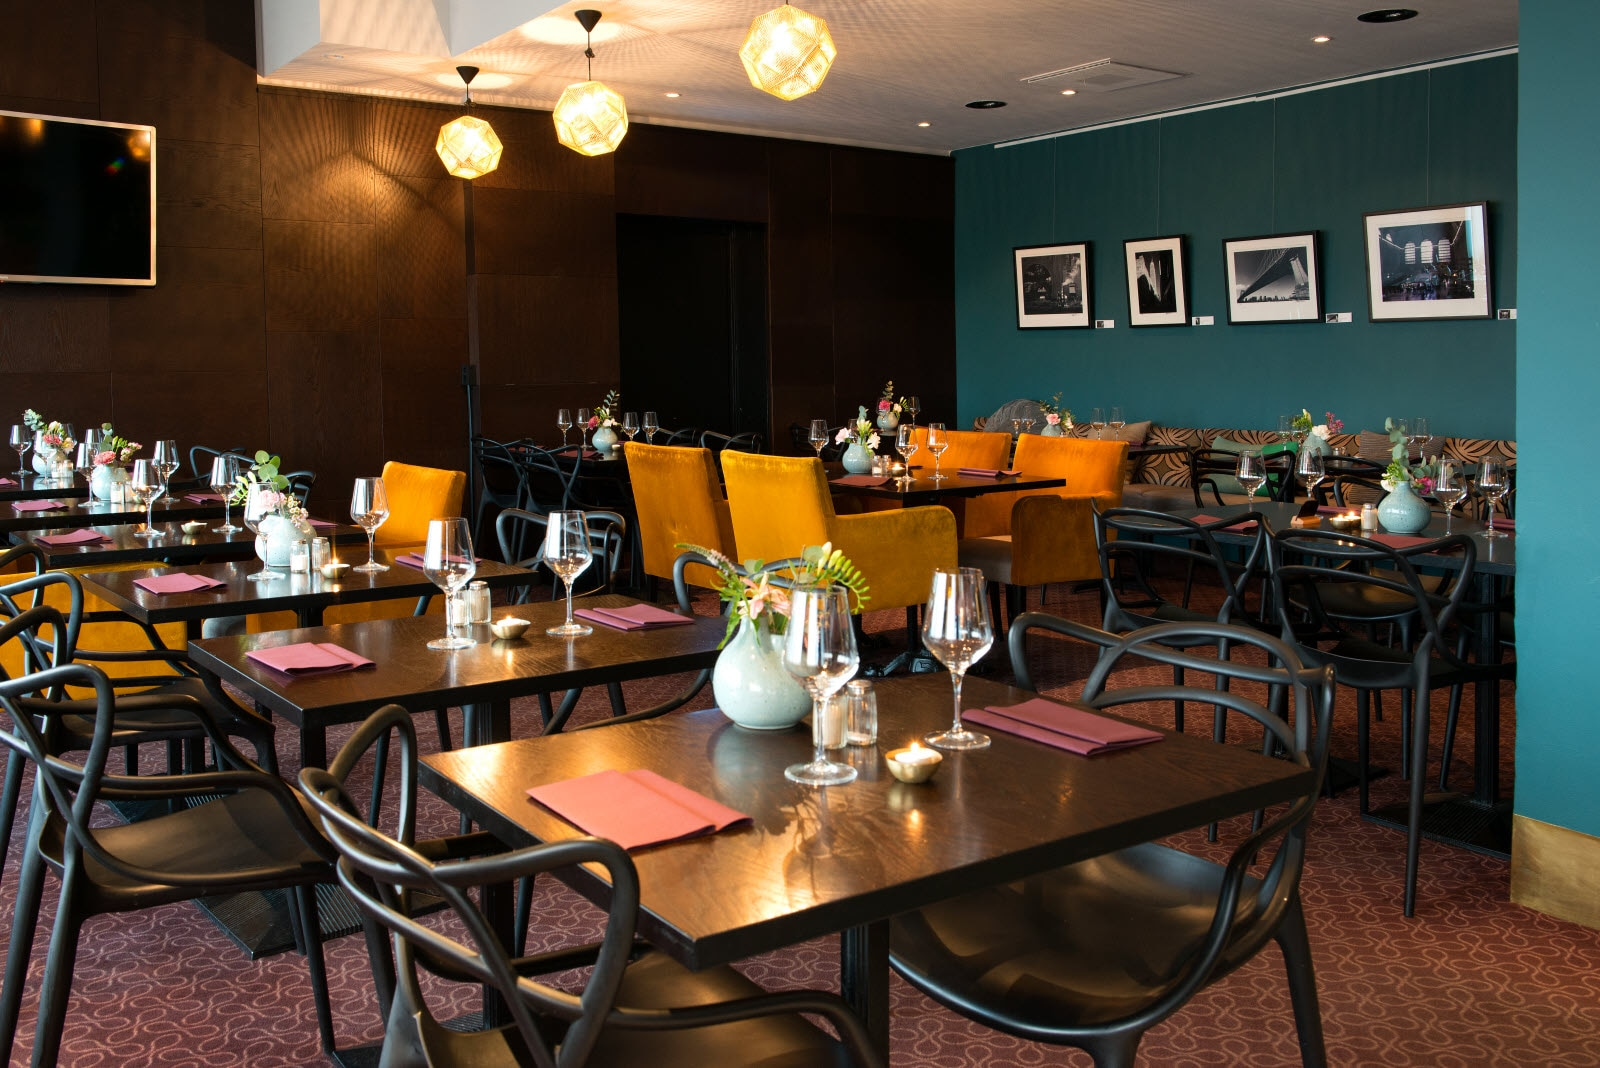 Scandic-No25-Restaurant.jpg